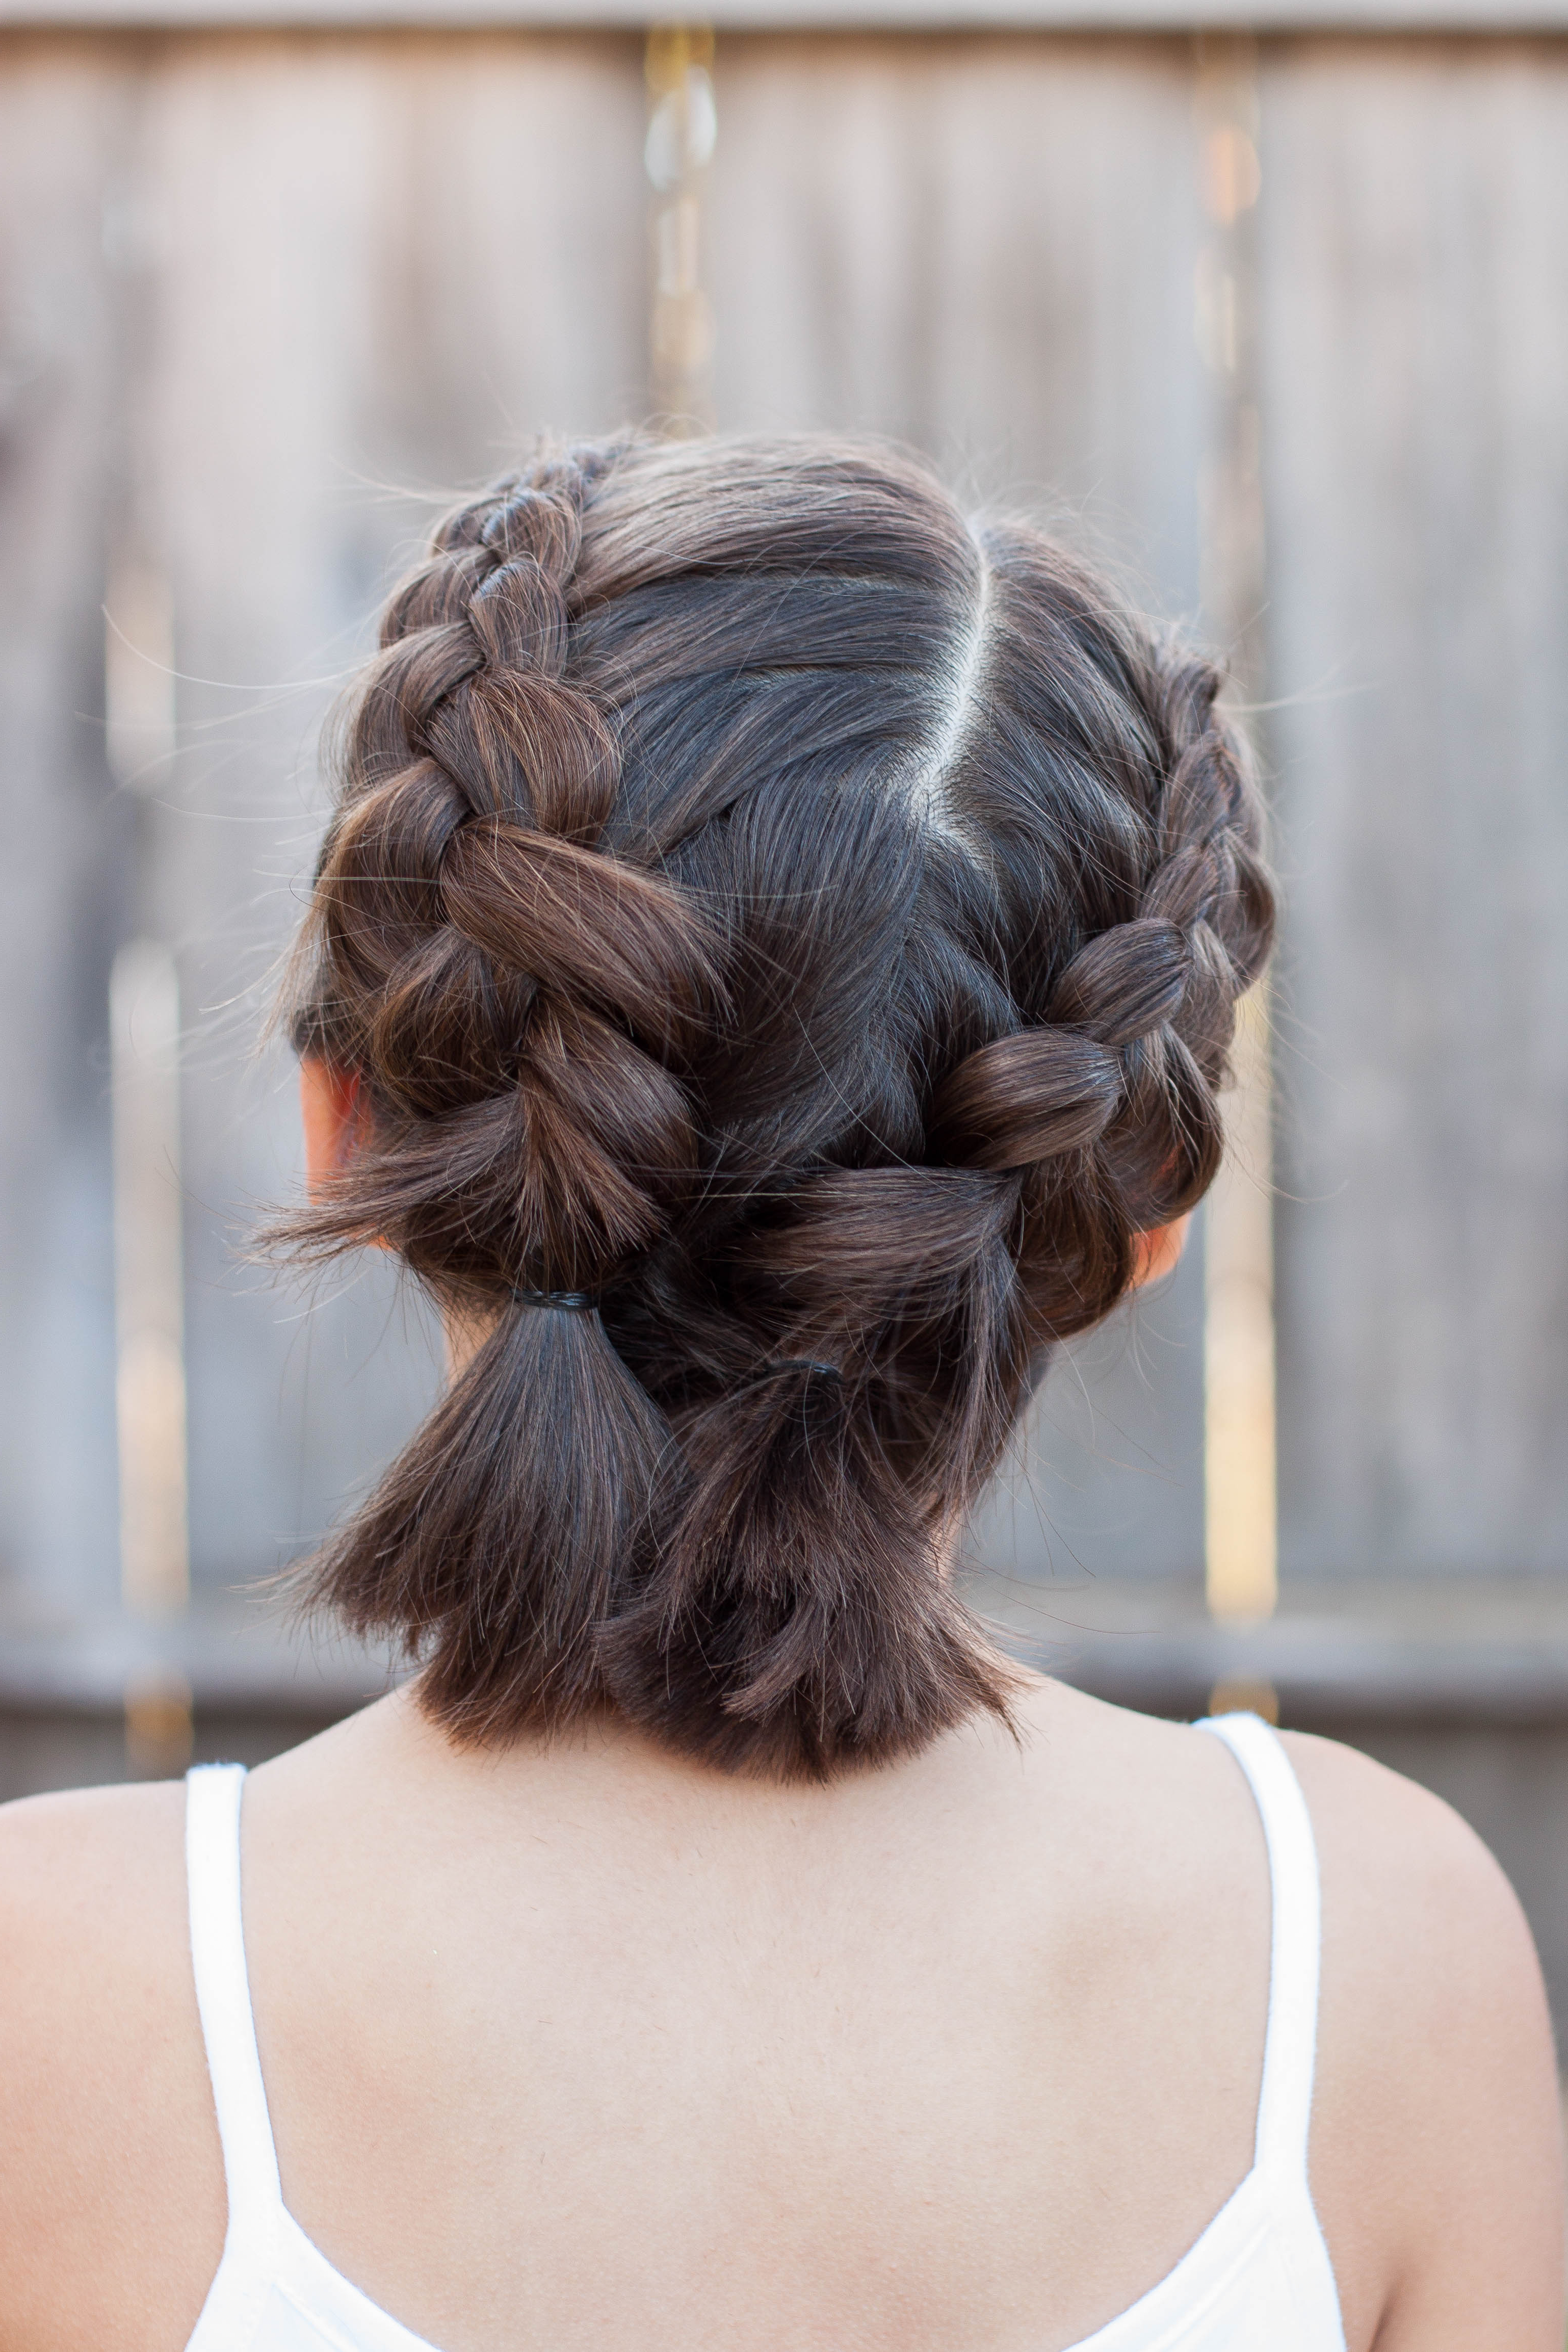 Cute Girls Hairstyles (View 11 of 20)